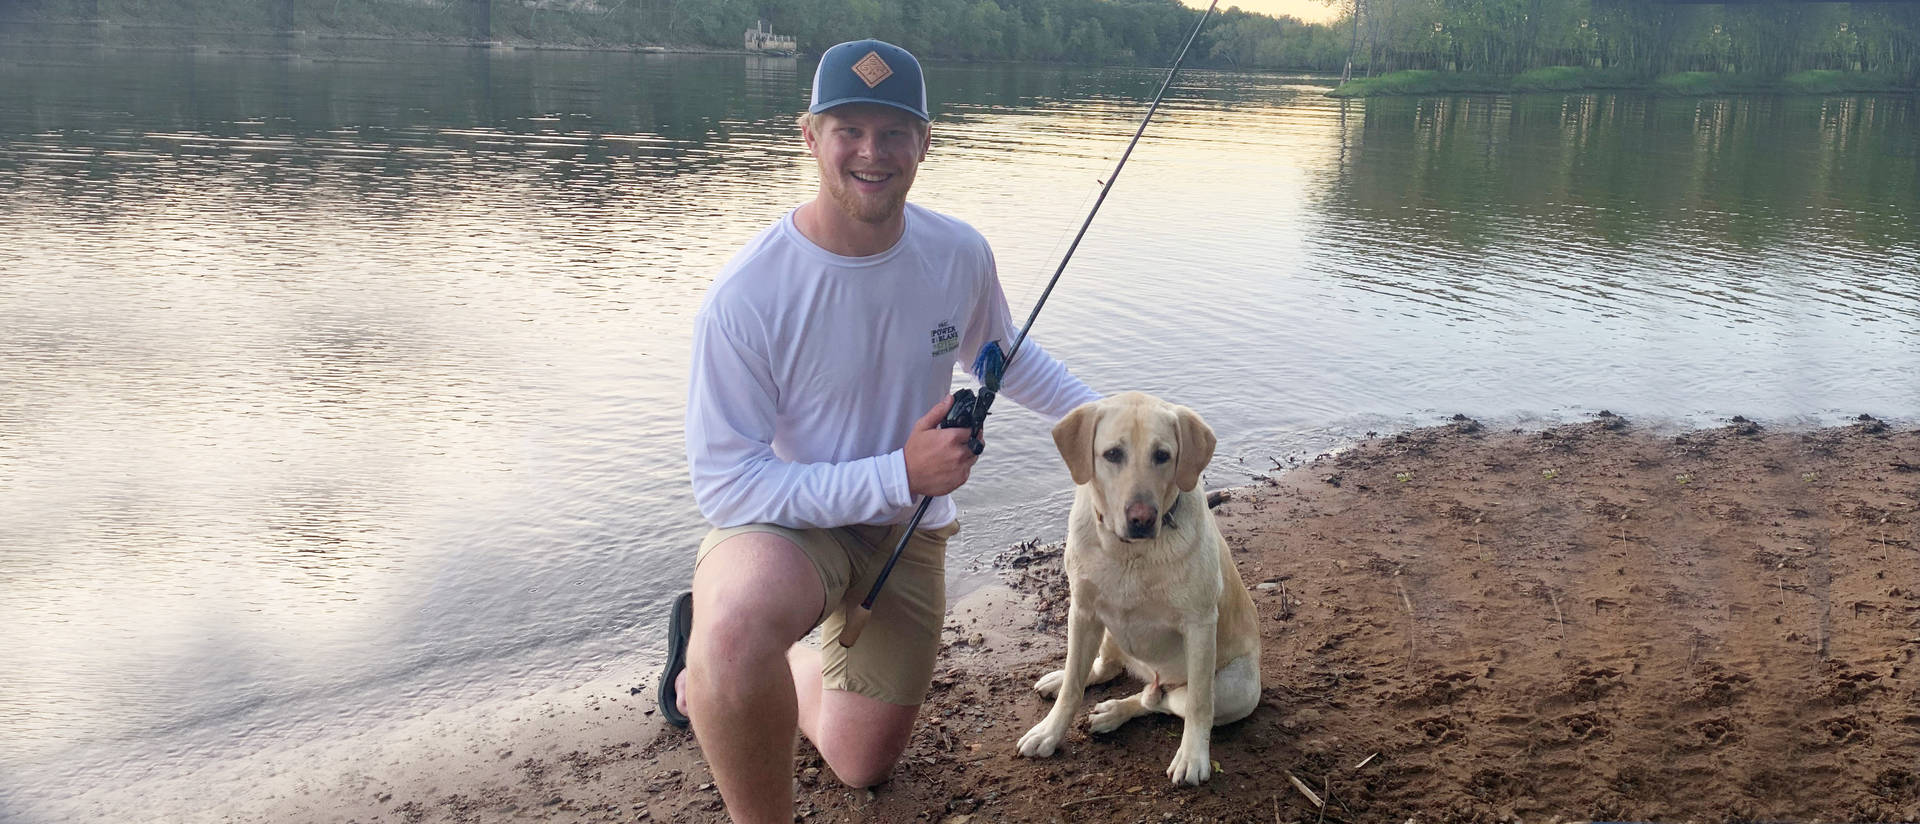 Joe Swanson has turned his passion for fishing into a thriving small business, Gold Standard Outdoors. He builds and sells custom fishing rods, something he learned to do when he was a boy.